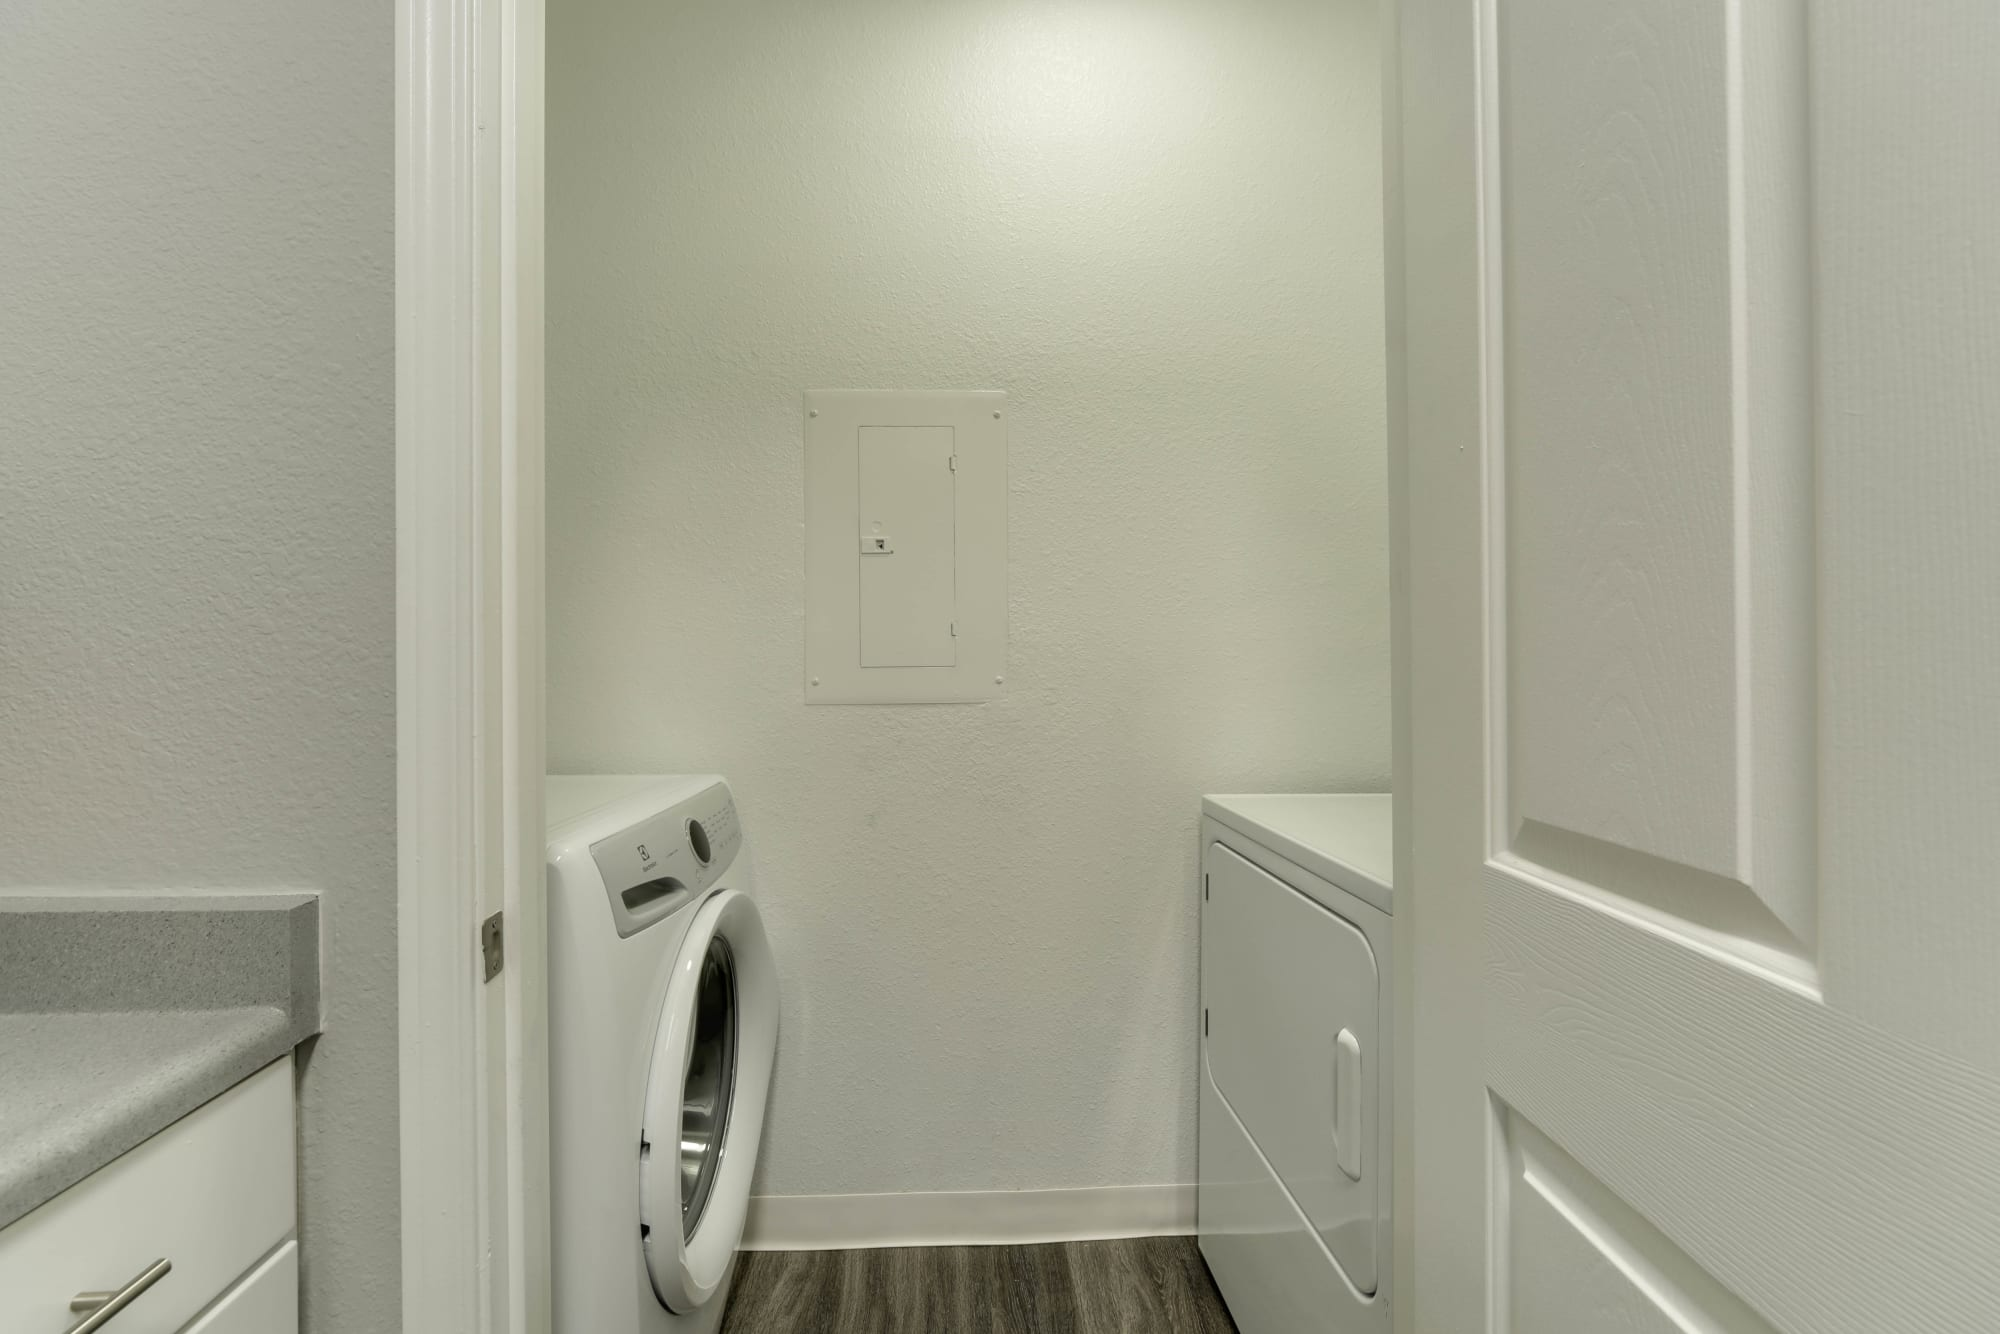 A washer and dryer combo at The Grove at Orenco Station in Hillsboro, Oregon